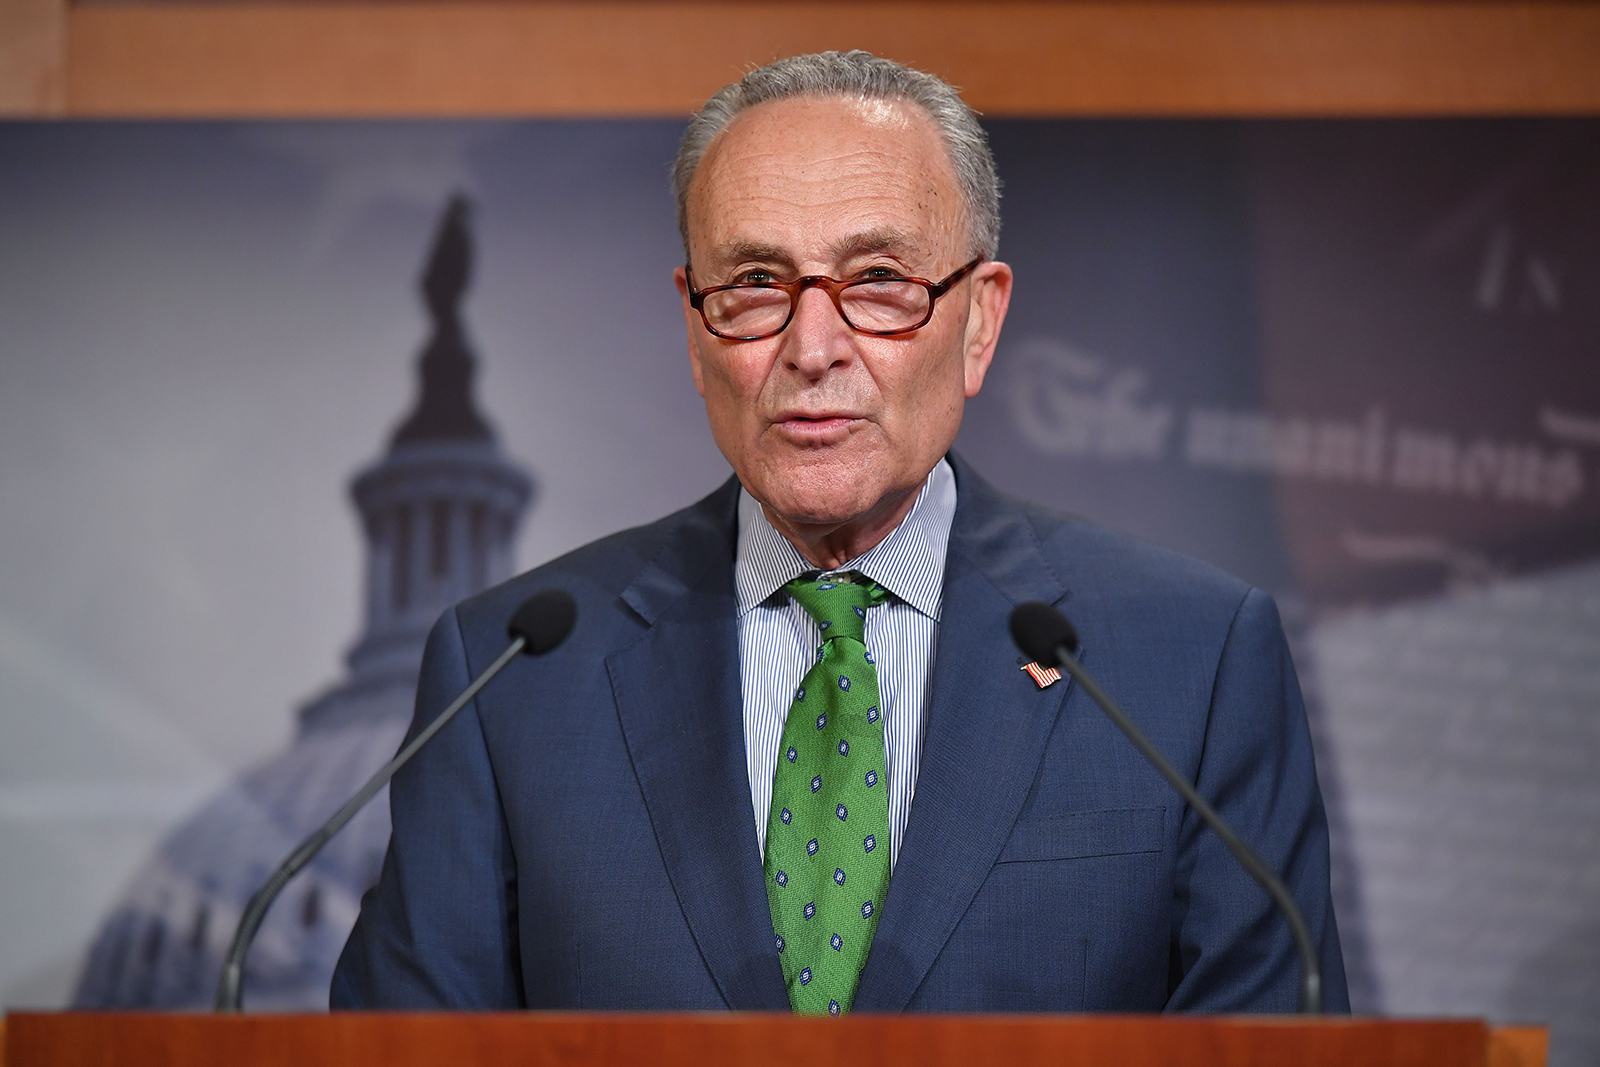 Senate Democratic Leader Chuck Schumer speaks during a press conference at the US Capitol in Washington, on June 9.